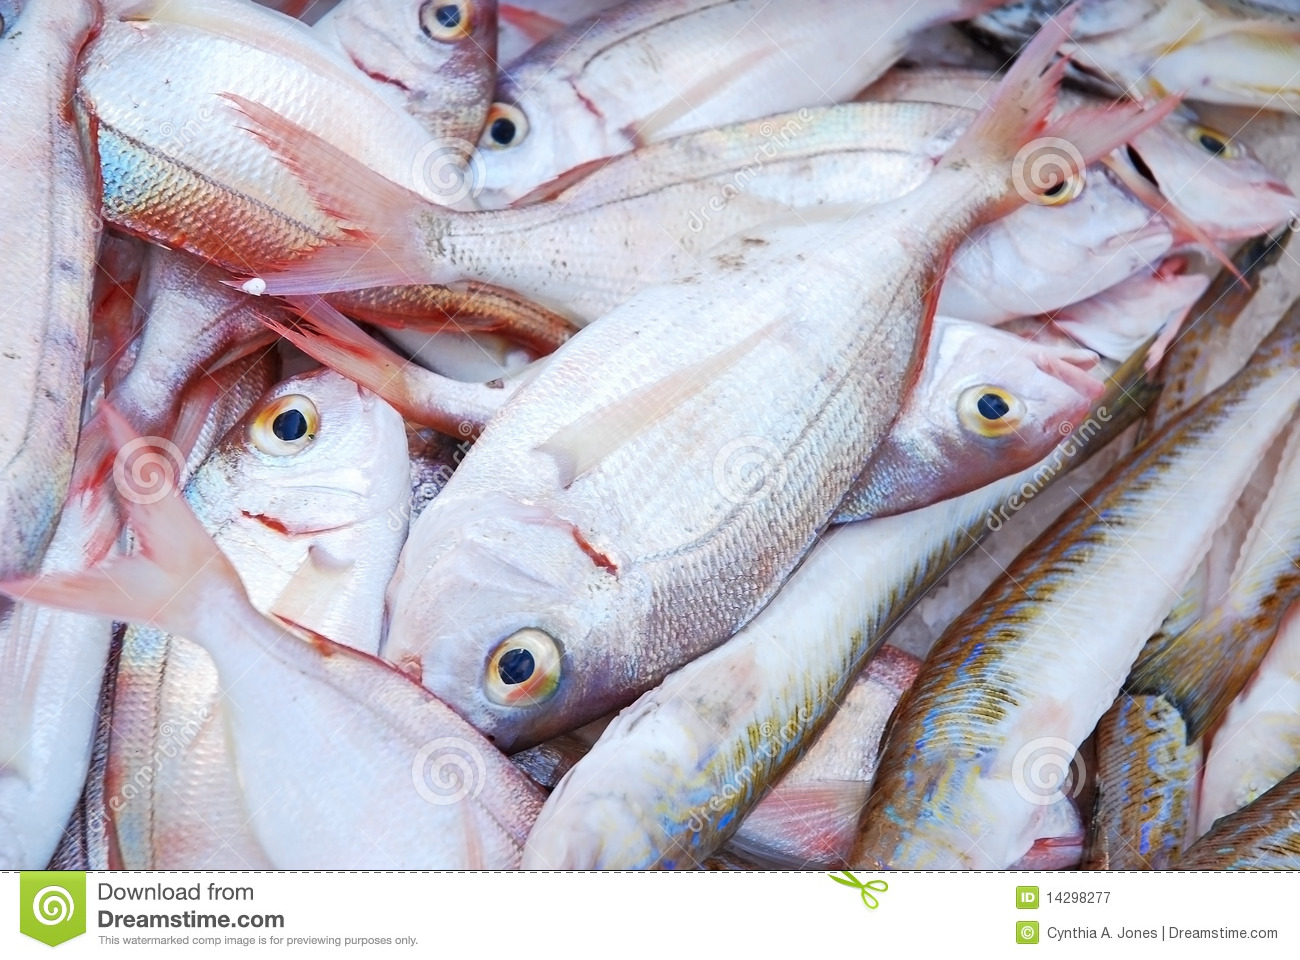 Food fish stock image image of silver delicious fresh for What is fish food made of